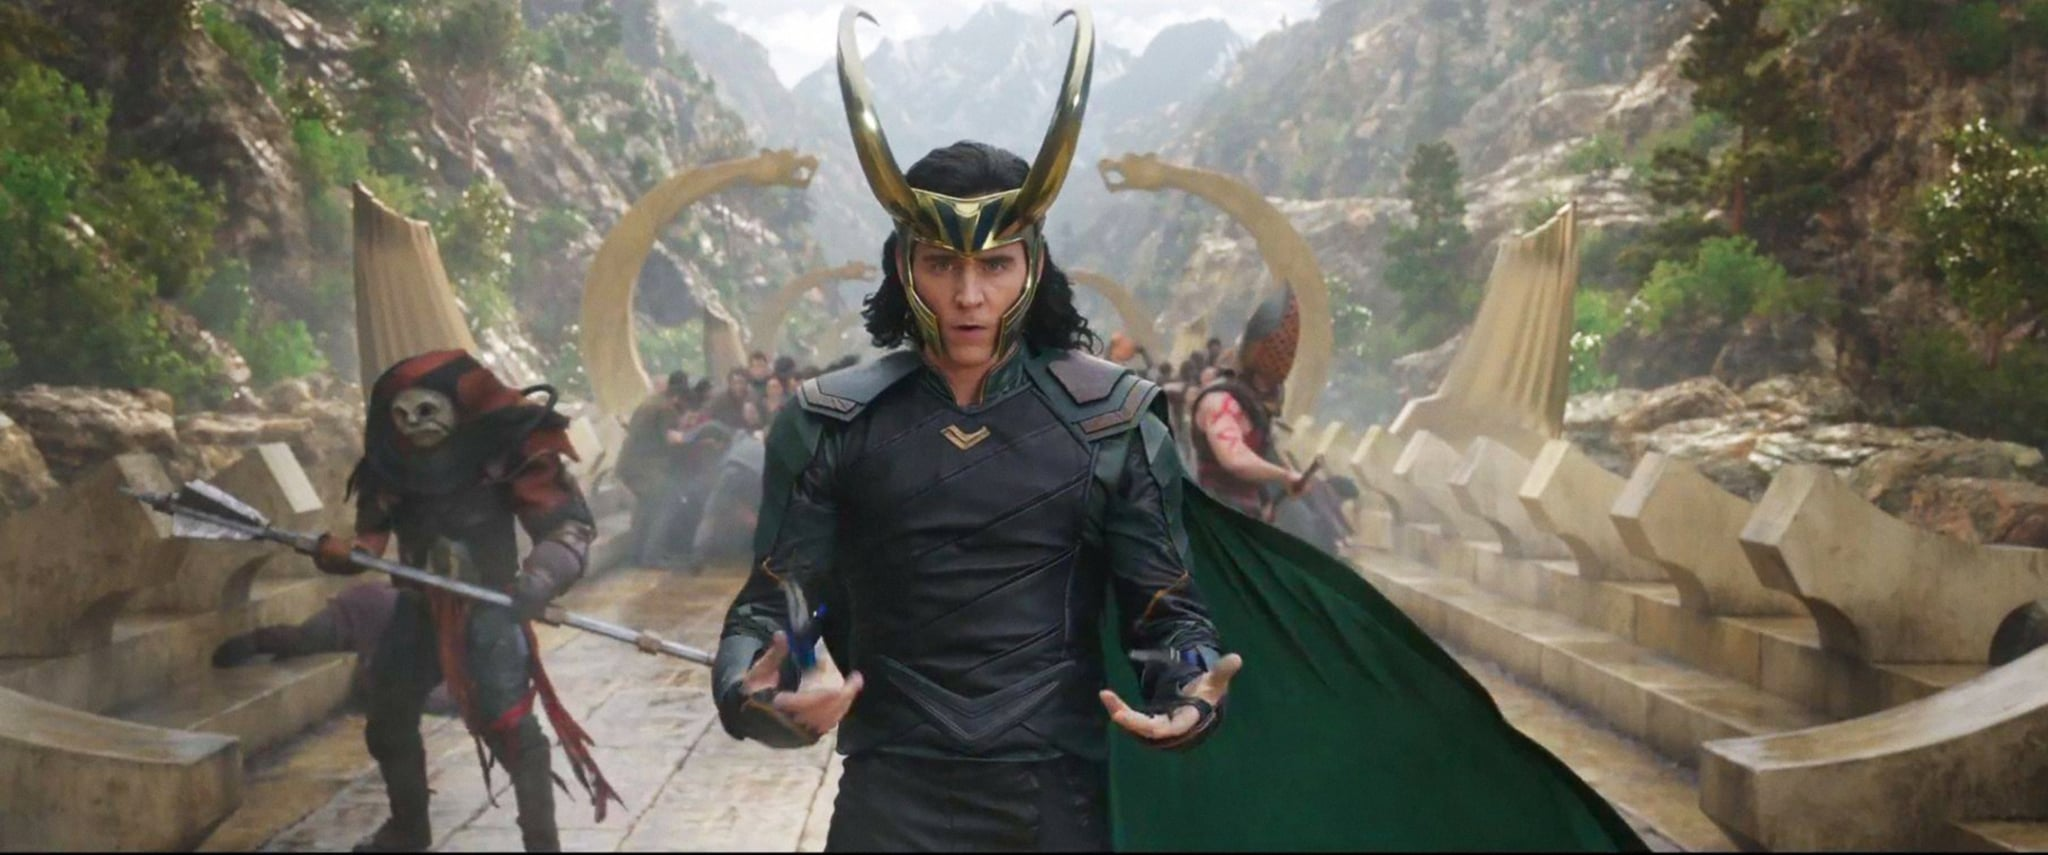 THOR: RAGNAROK, Tom Hiddleston as Loki, 2017. Walt Disney Studios Motion Pictures/courtesy Everett Collection